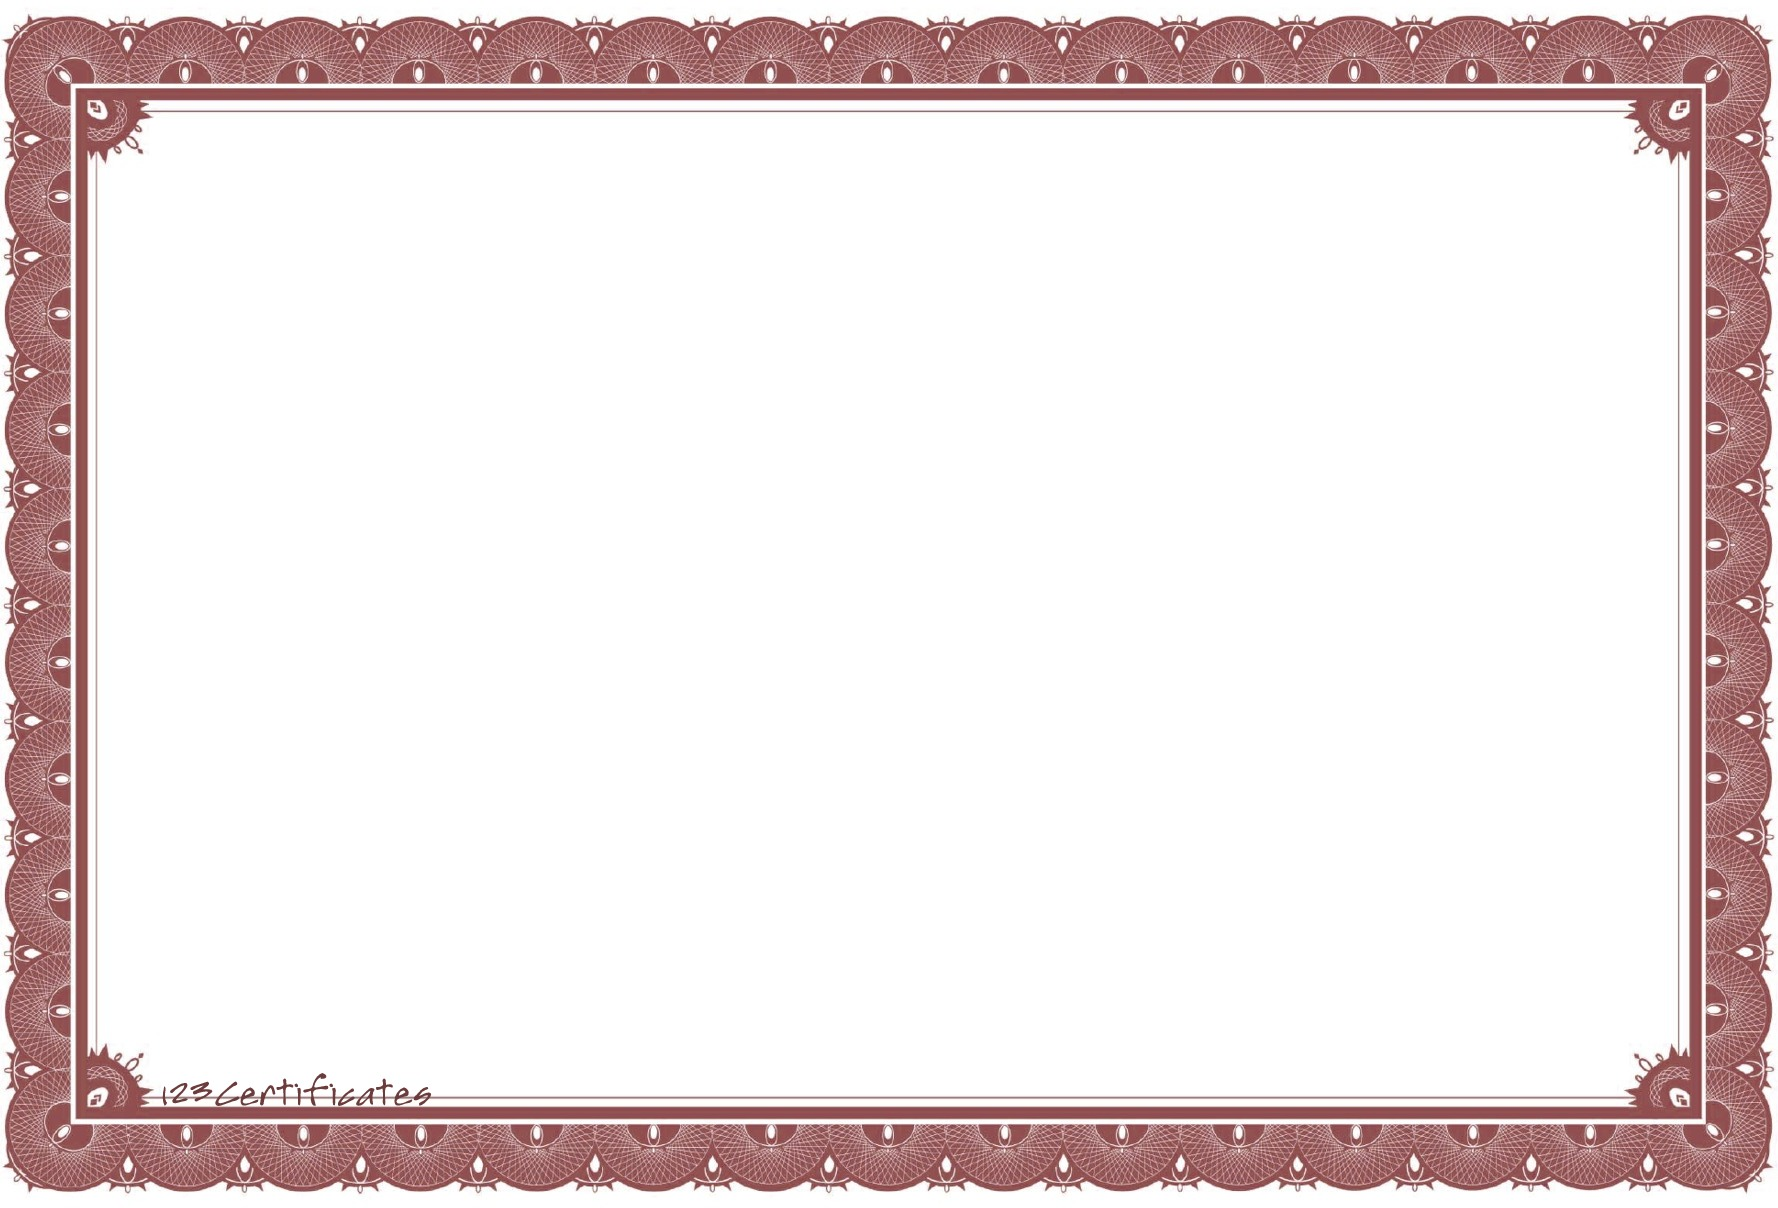 Top 10 Free Certificate Borders for All Occasions: Template Downloads ...